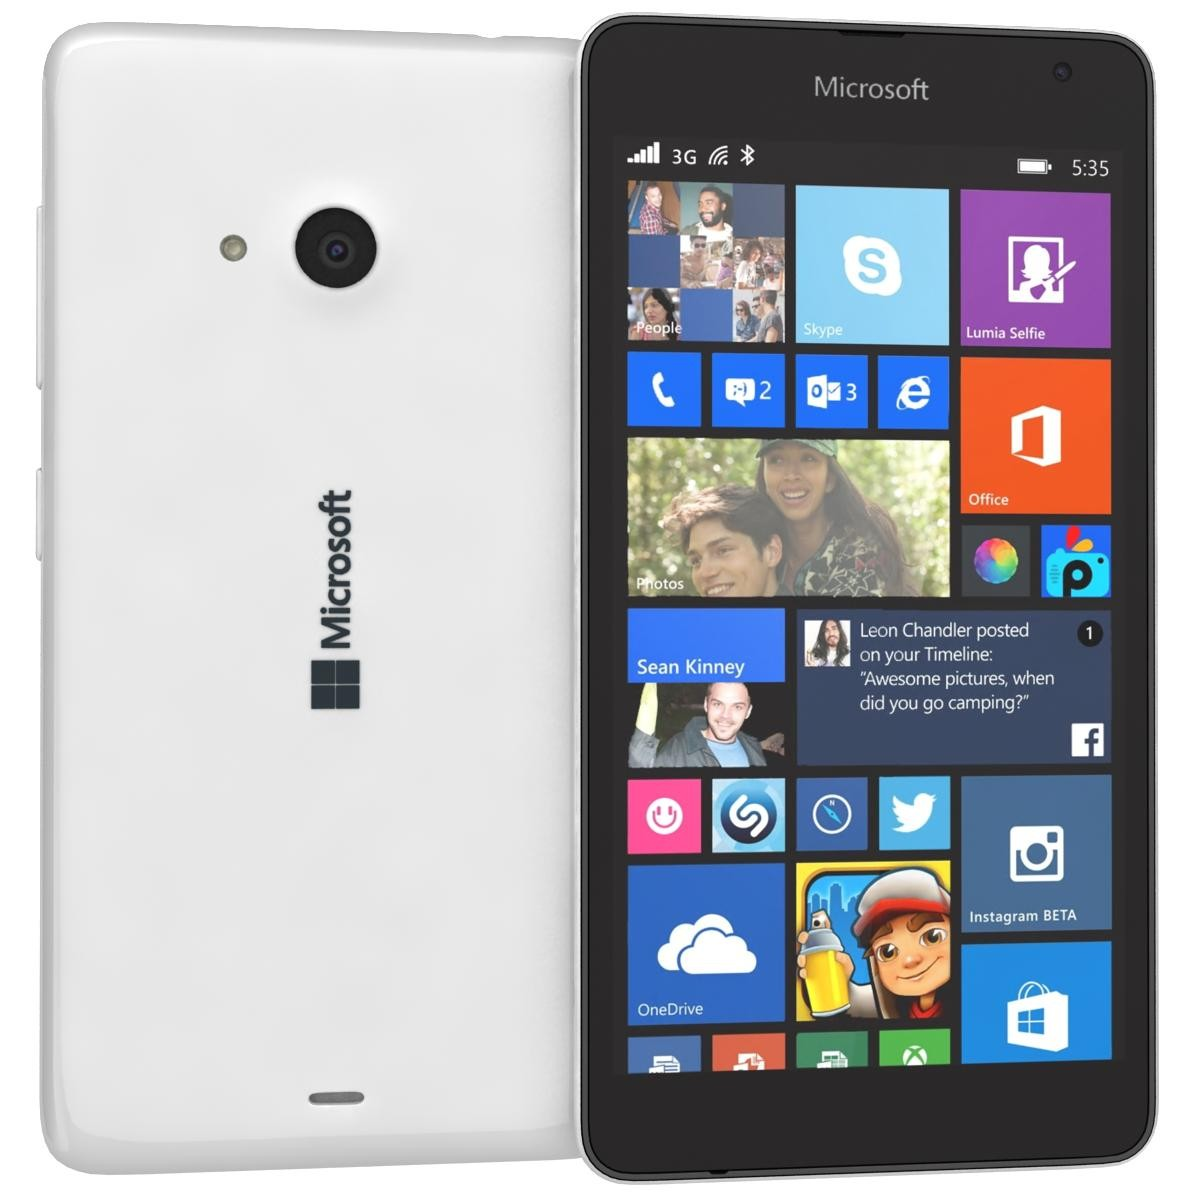 Davenport Look, microsoft lumia 535 dual sim update provide outstanding customer